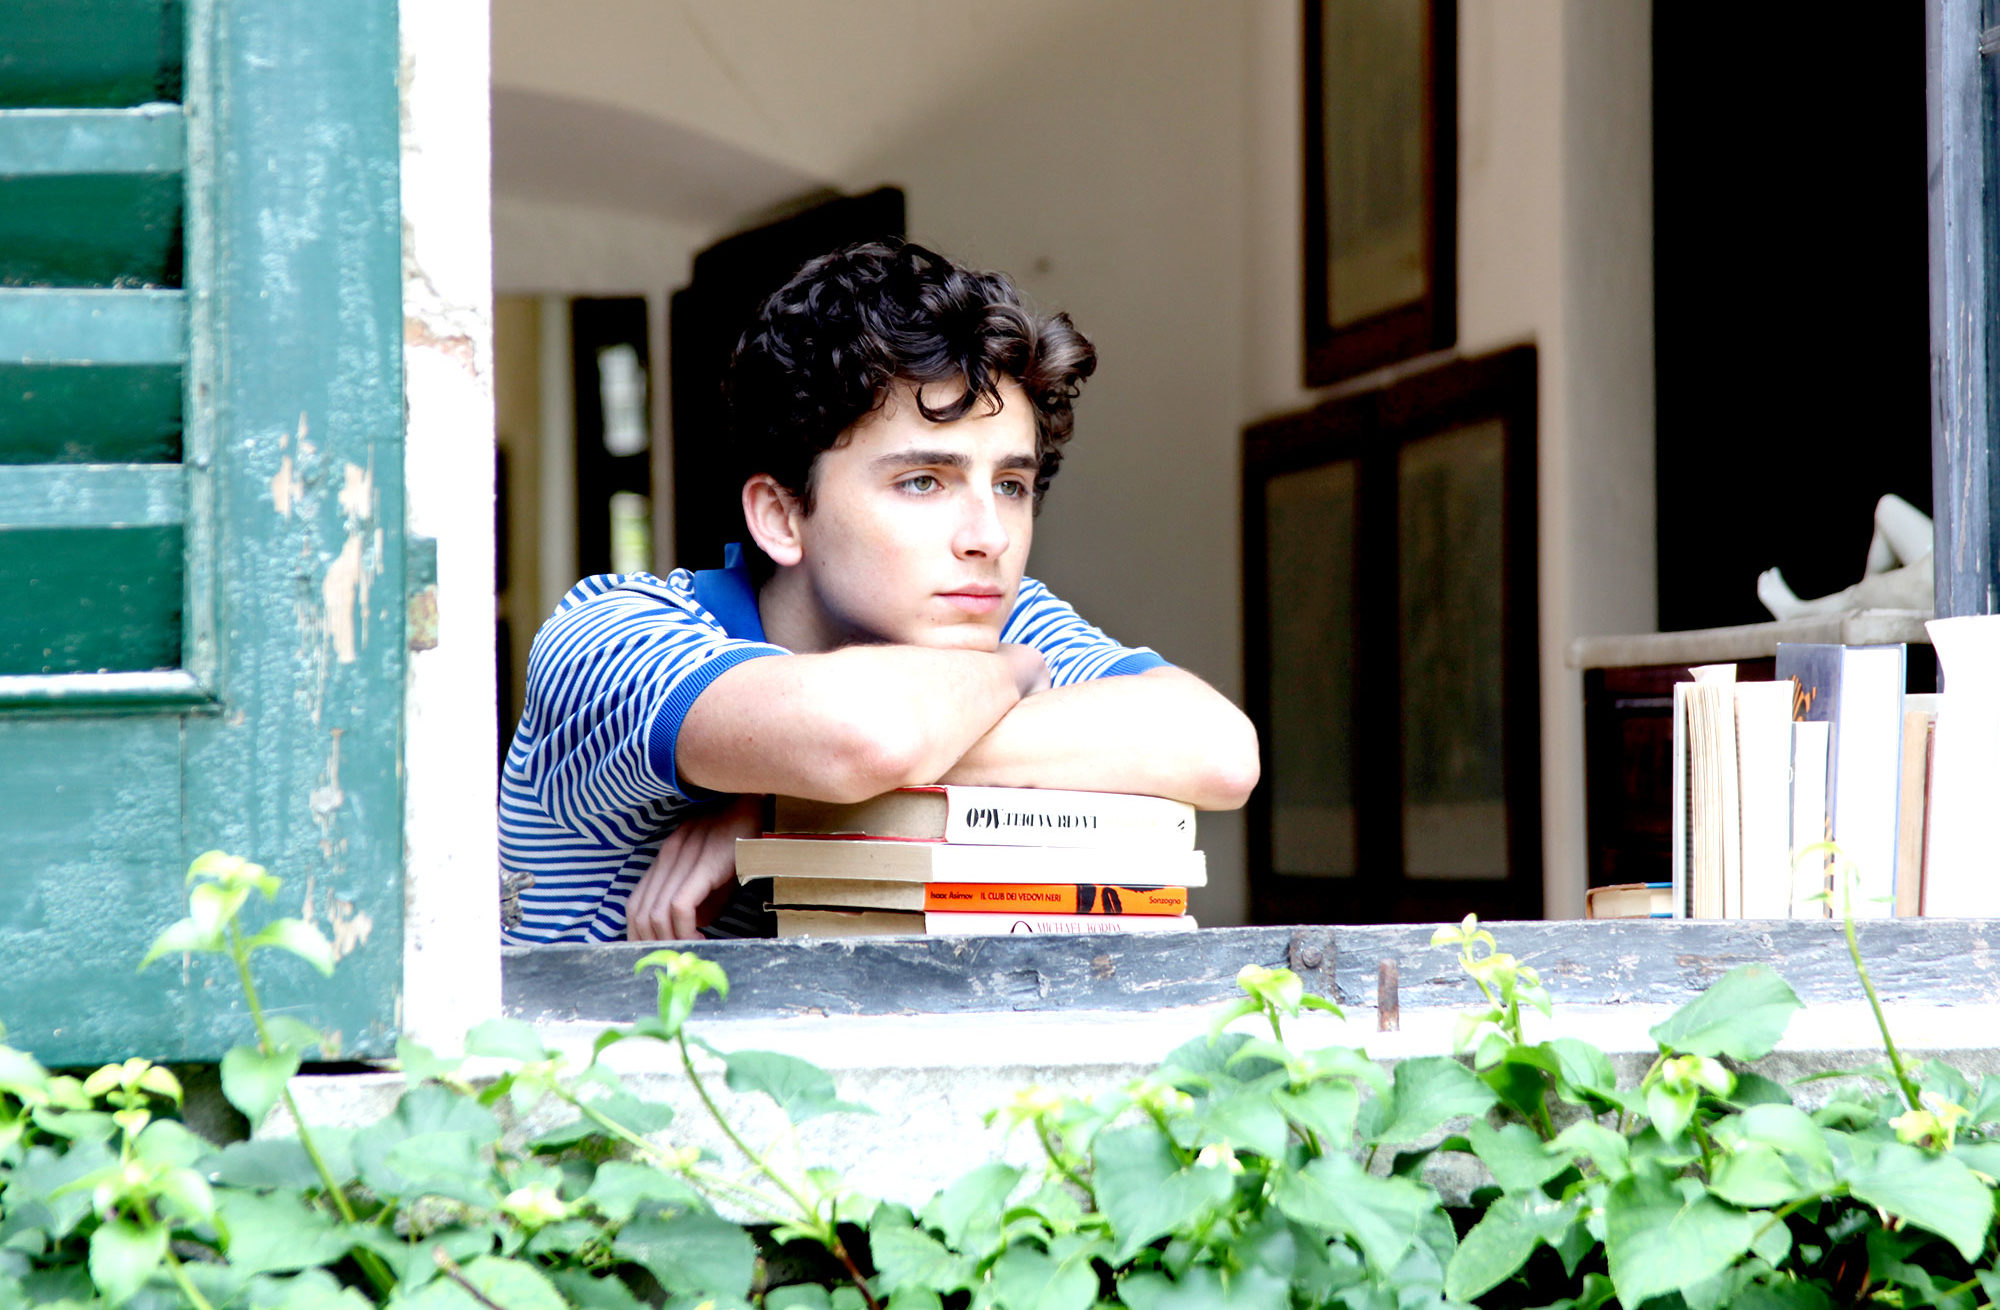 call-me-by-your-name-timothee-chalamet-e1516276791246.jpg